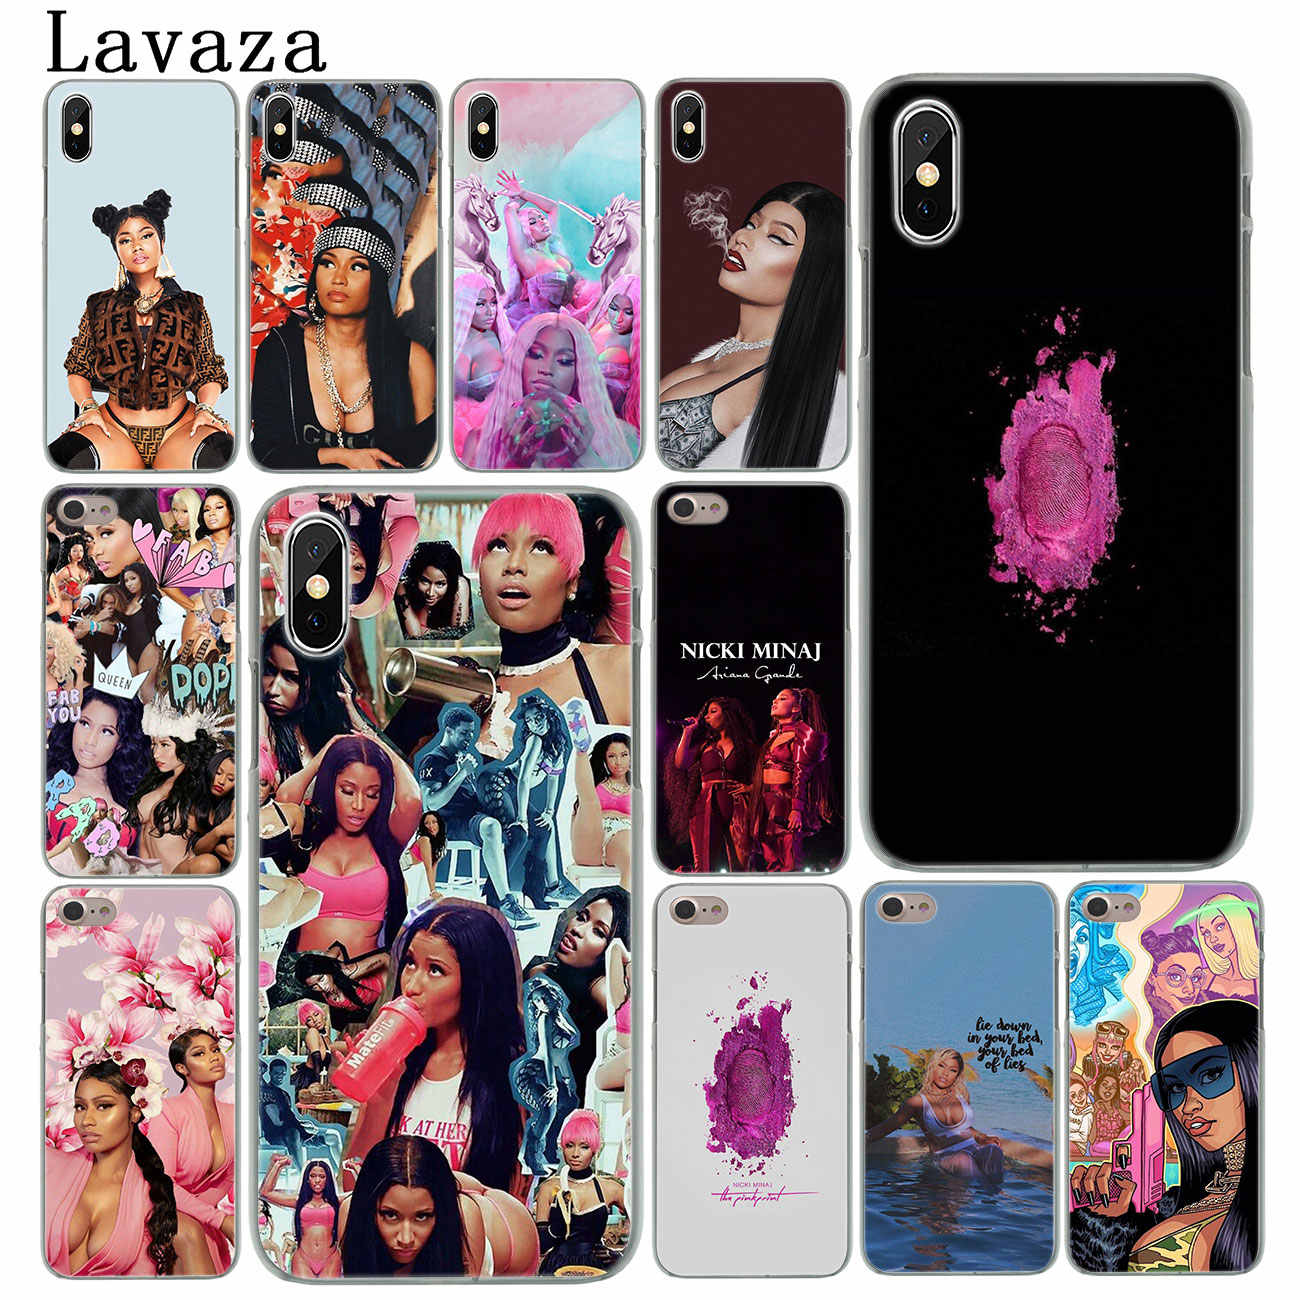 Lavaza Nicki Minaj Rapper Populaire Harde Telefoon Cover Case voor iPhone XR X 11 Pro XS Max 8 7 6 6S 5 5S SE 4S 4 10